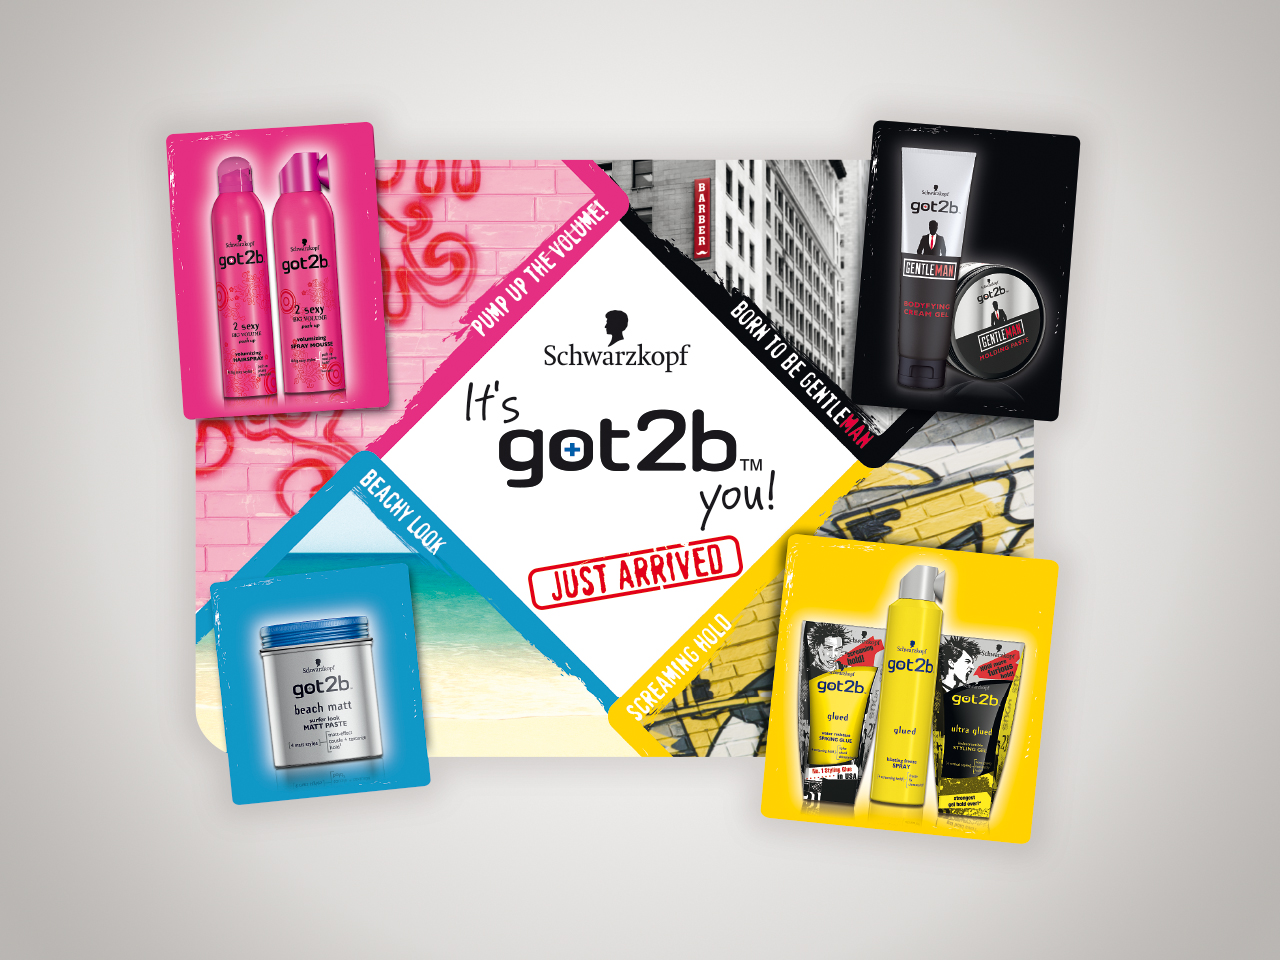 henkel, got2b, in-store promotion, market & trade